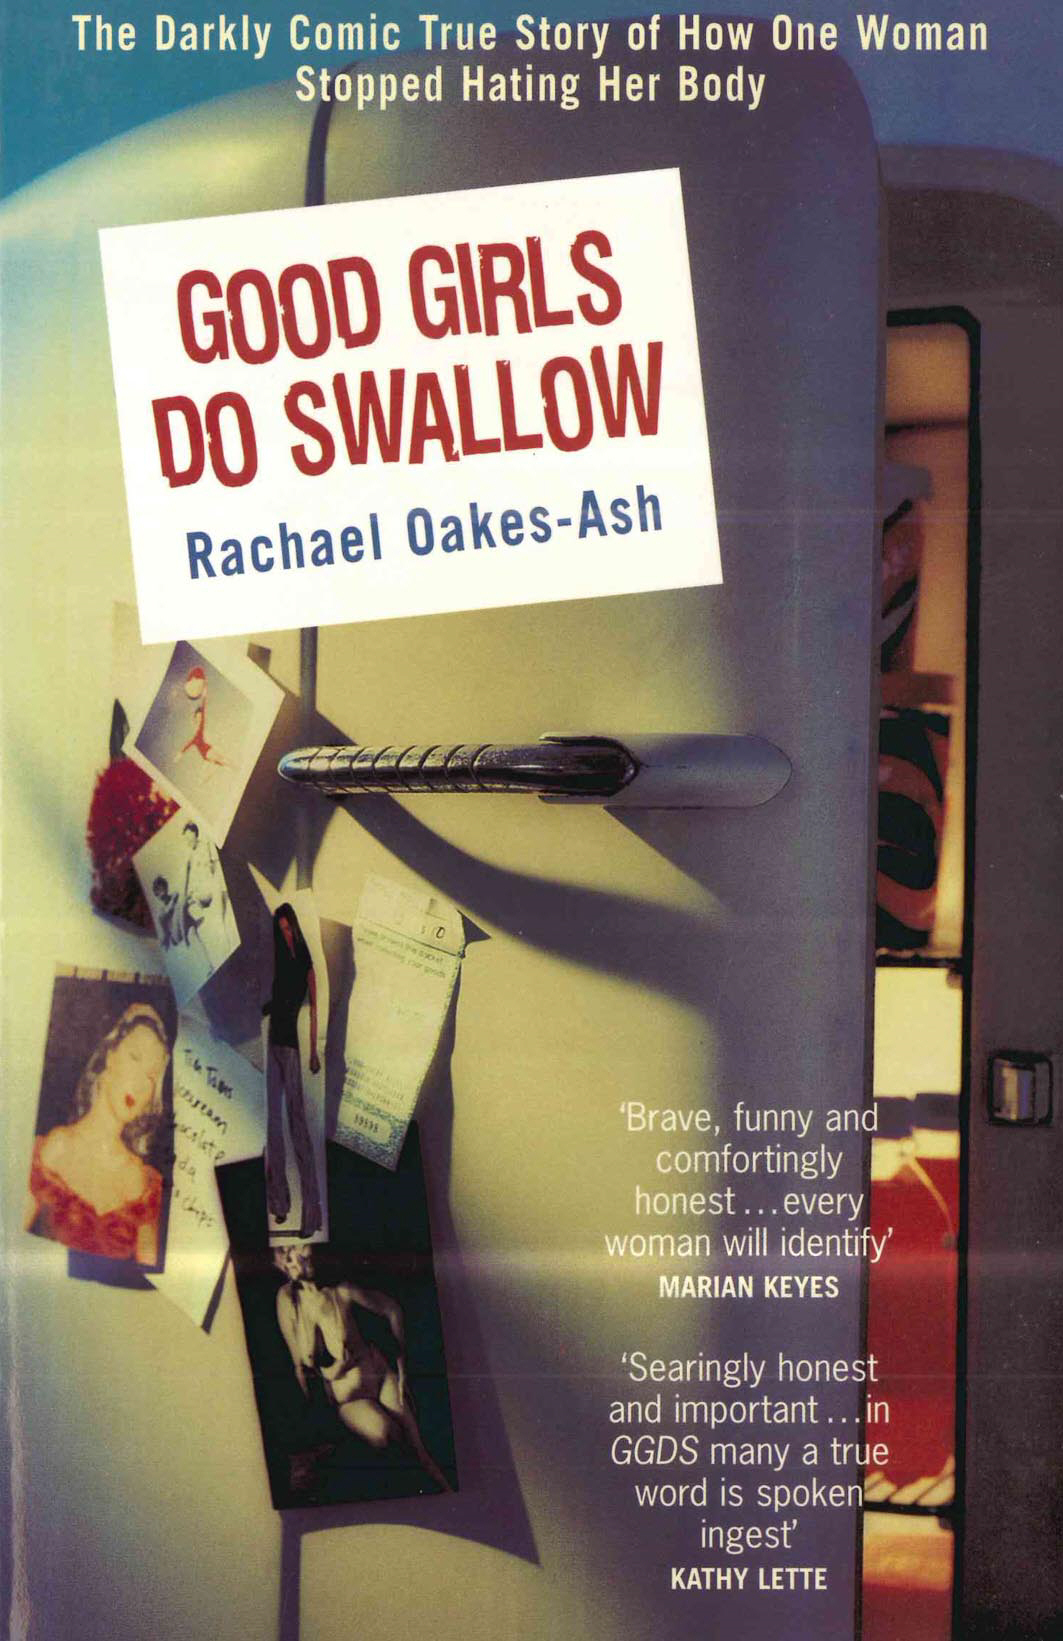 Good Girls Do Swallow The Darkly Comic True Story of How One Woman Stopped Hating Her Body